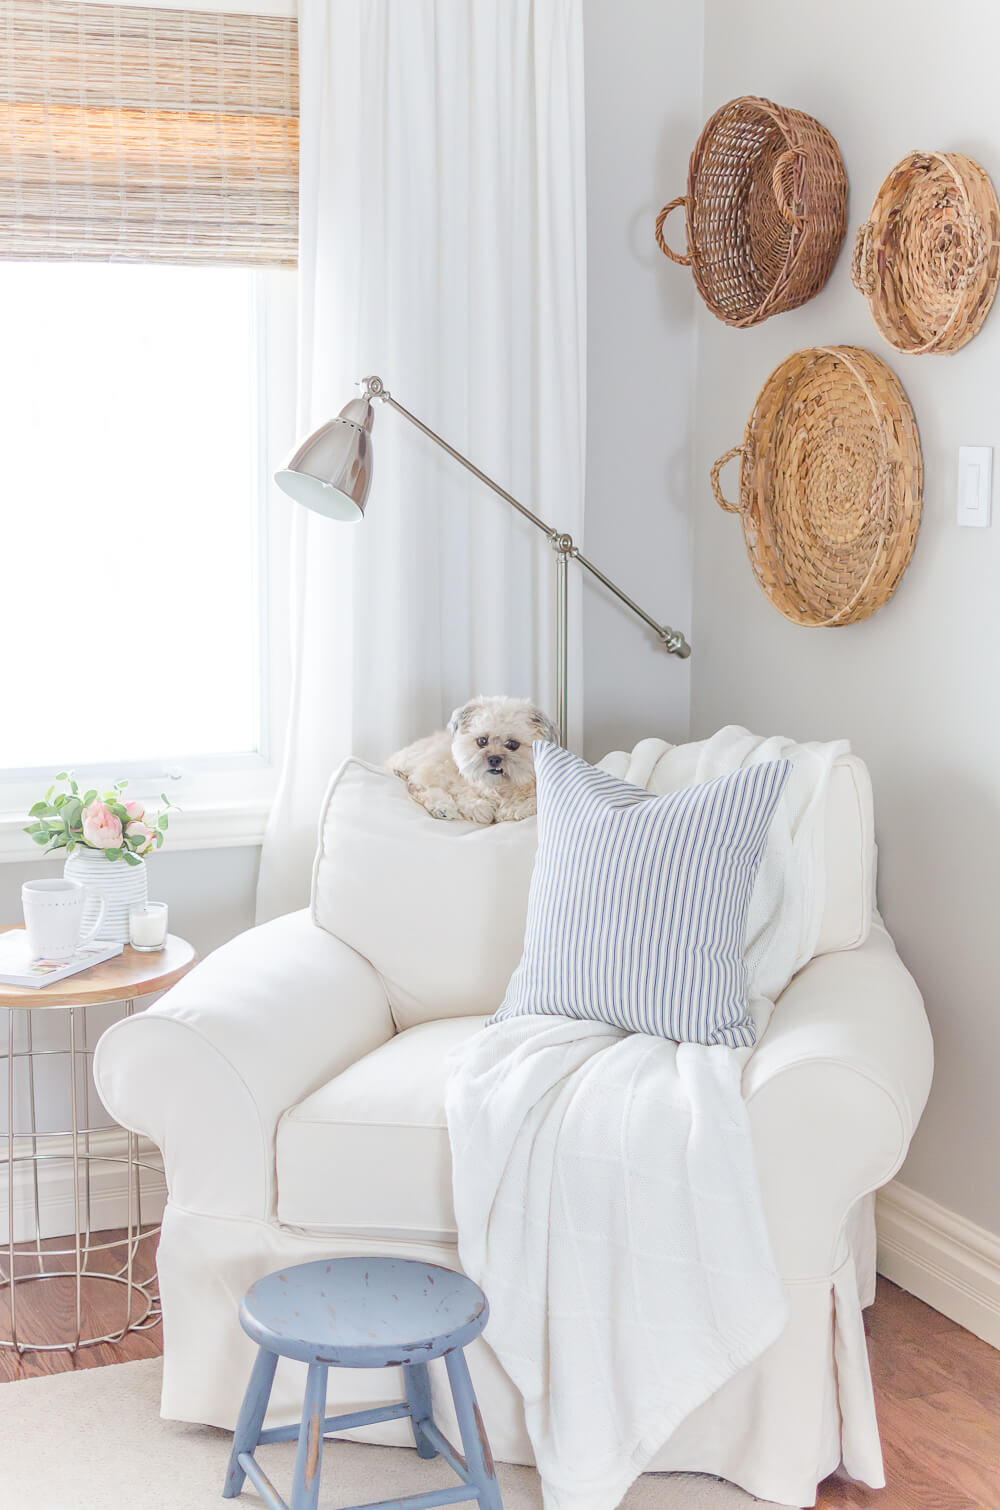 Soft Gray Walls, White Linens, Woven Accents